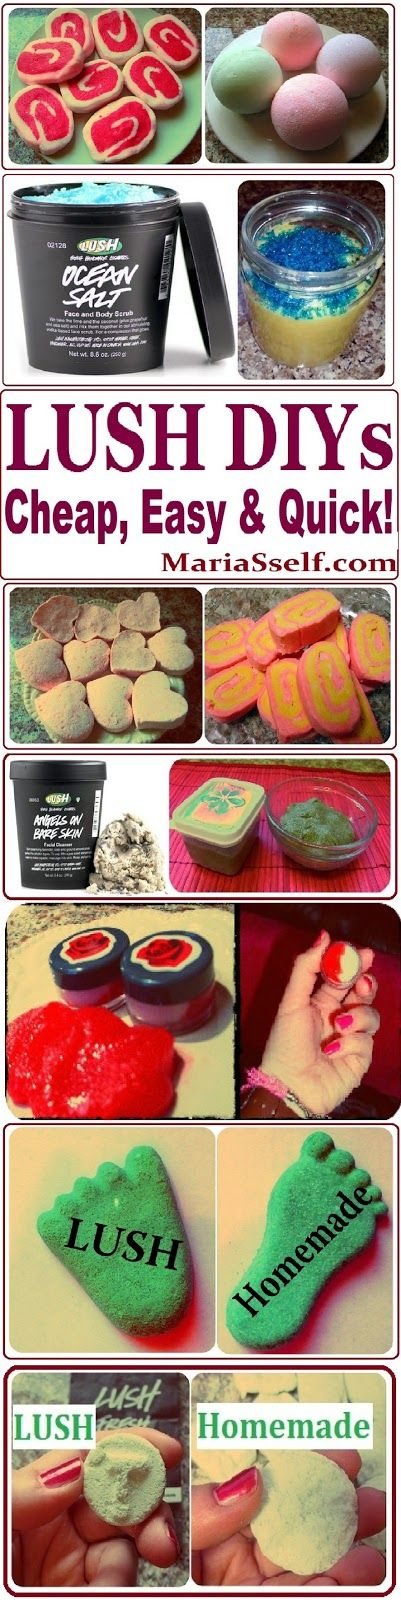 DIY LUSH Product Recipes, How to Make them CHEAP, EASY & QUICK on www.MariaSself.com Homemade Gift Ideas for Birthday, Mother's Day Etc.. WOW!!! think of the possibilities!!! I've got do this!!!